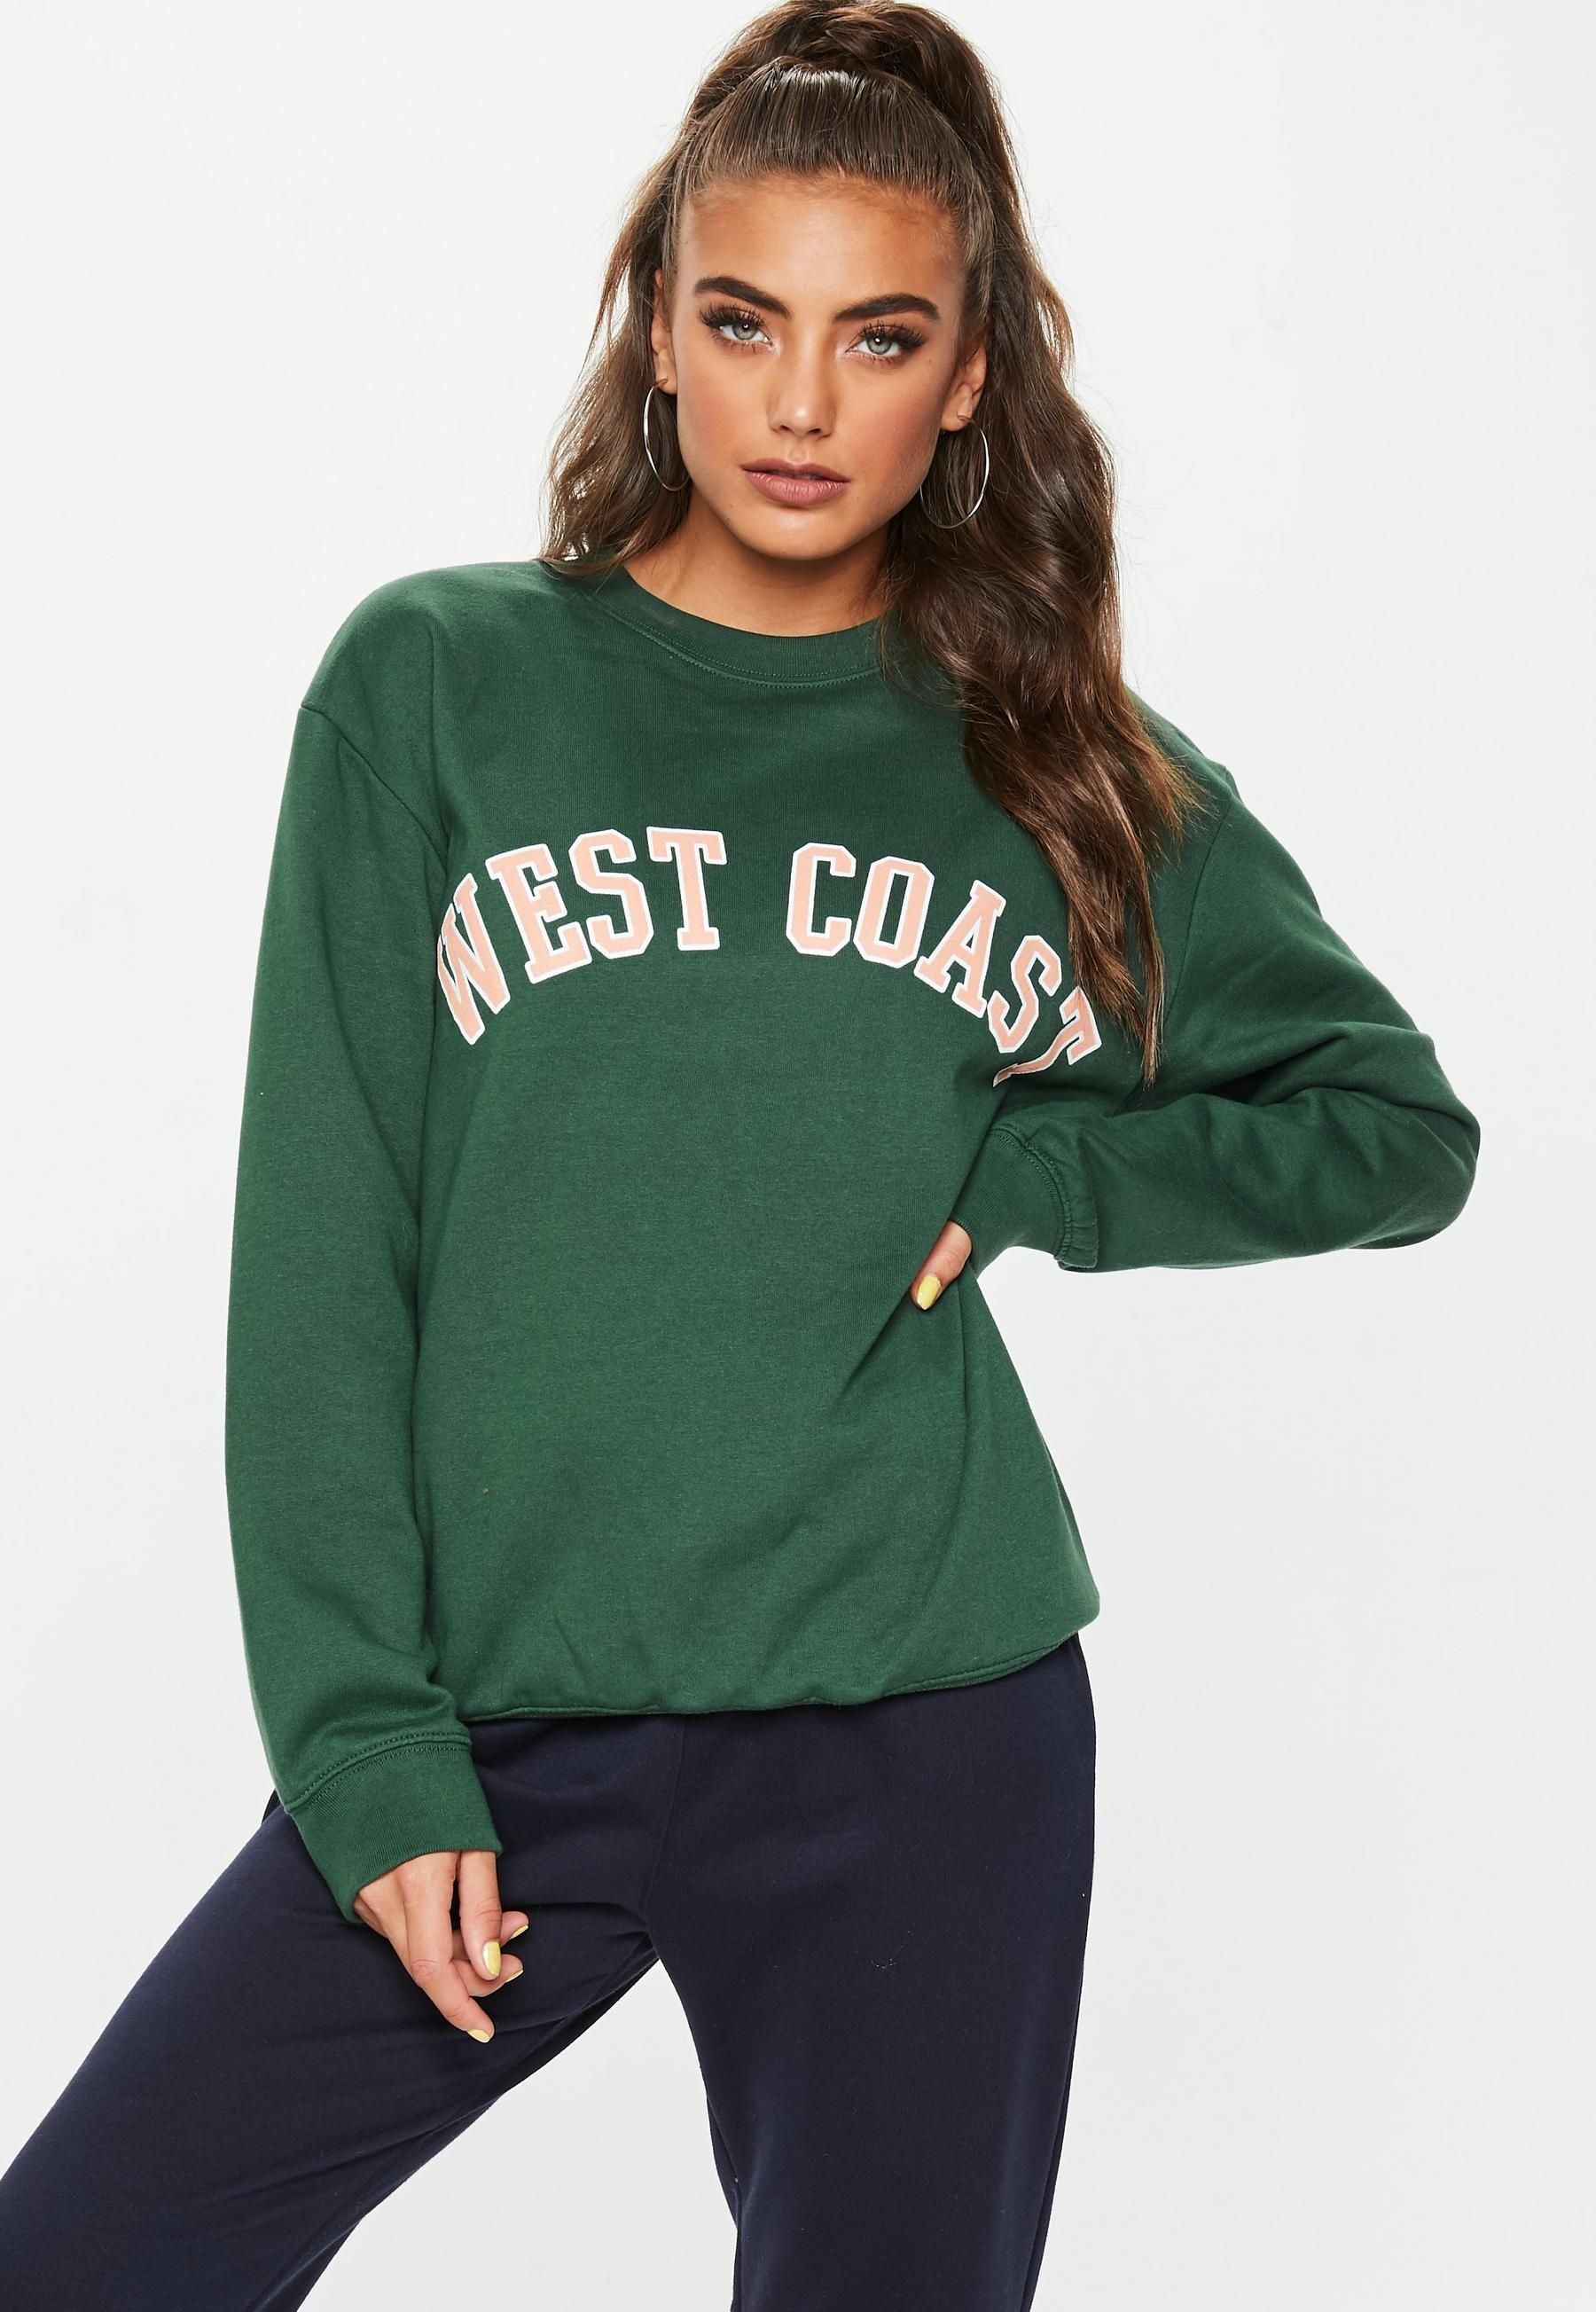 aliexpress wholesale outlet online shop Green West Coast Slogan Sweatshirt | Fashion, Sweatshirts, Tops